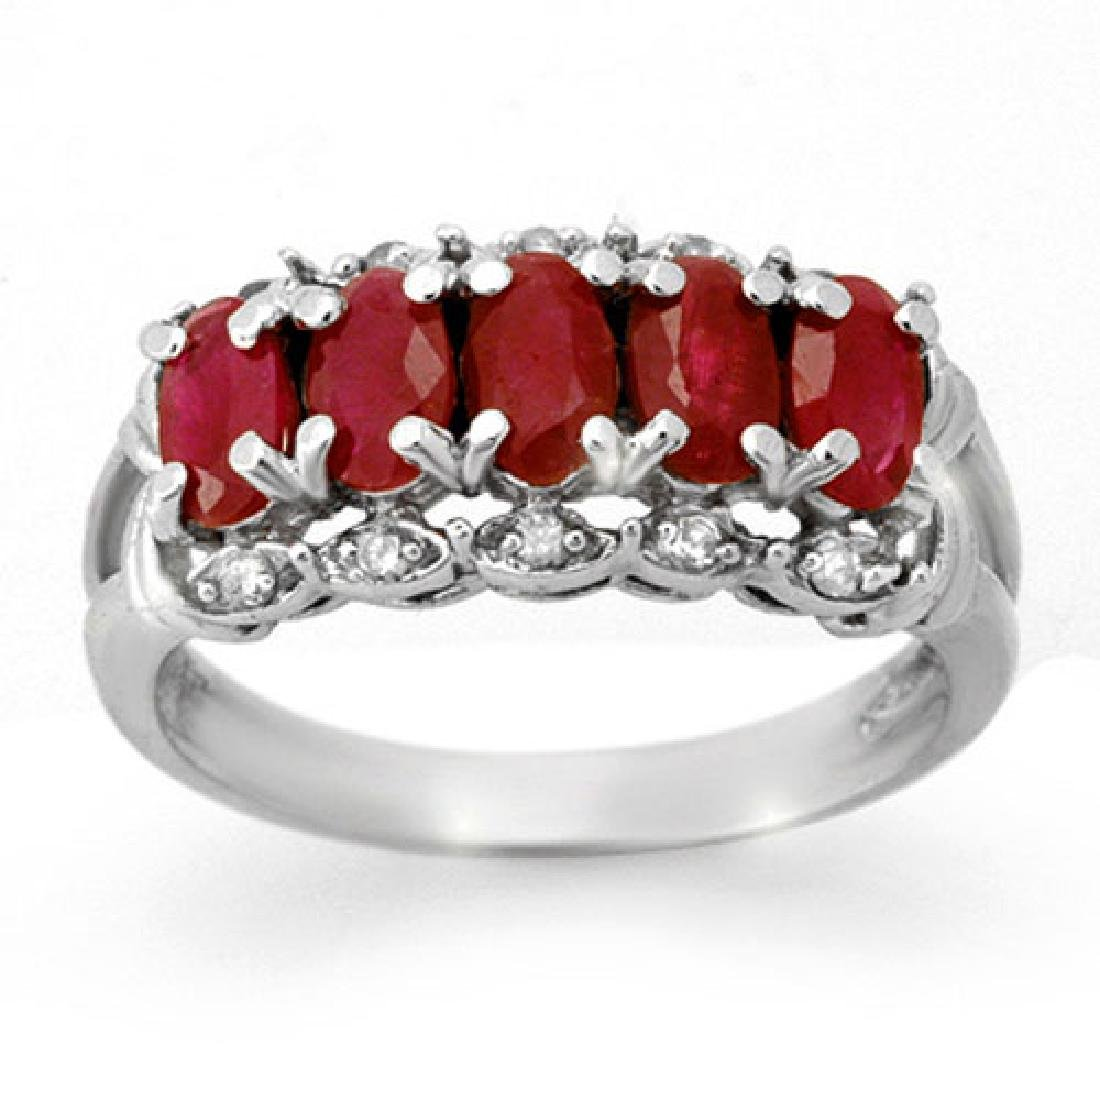 2.0 CTW Ruby & Diamond Ring 10K White Gold